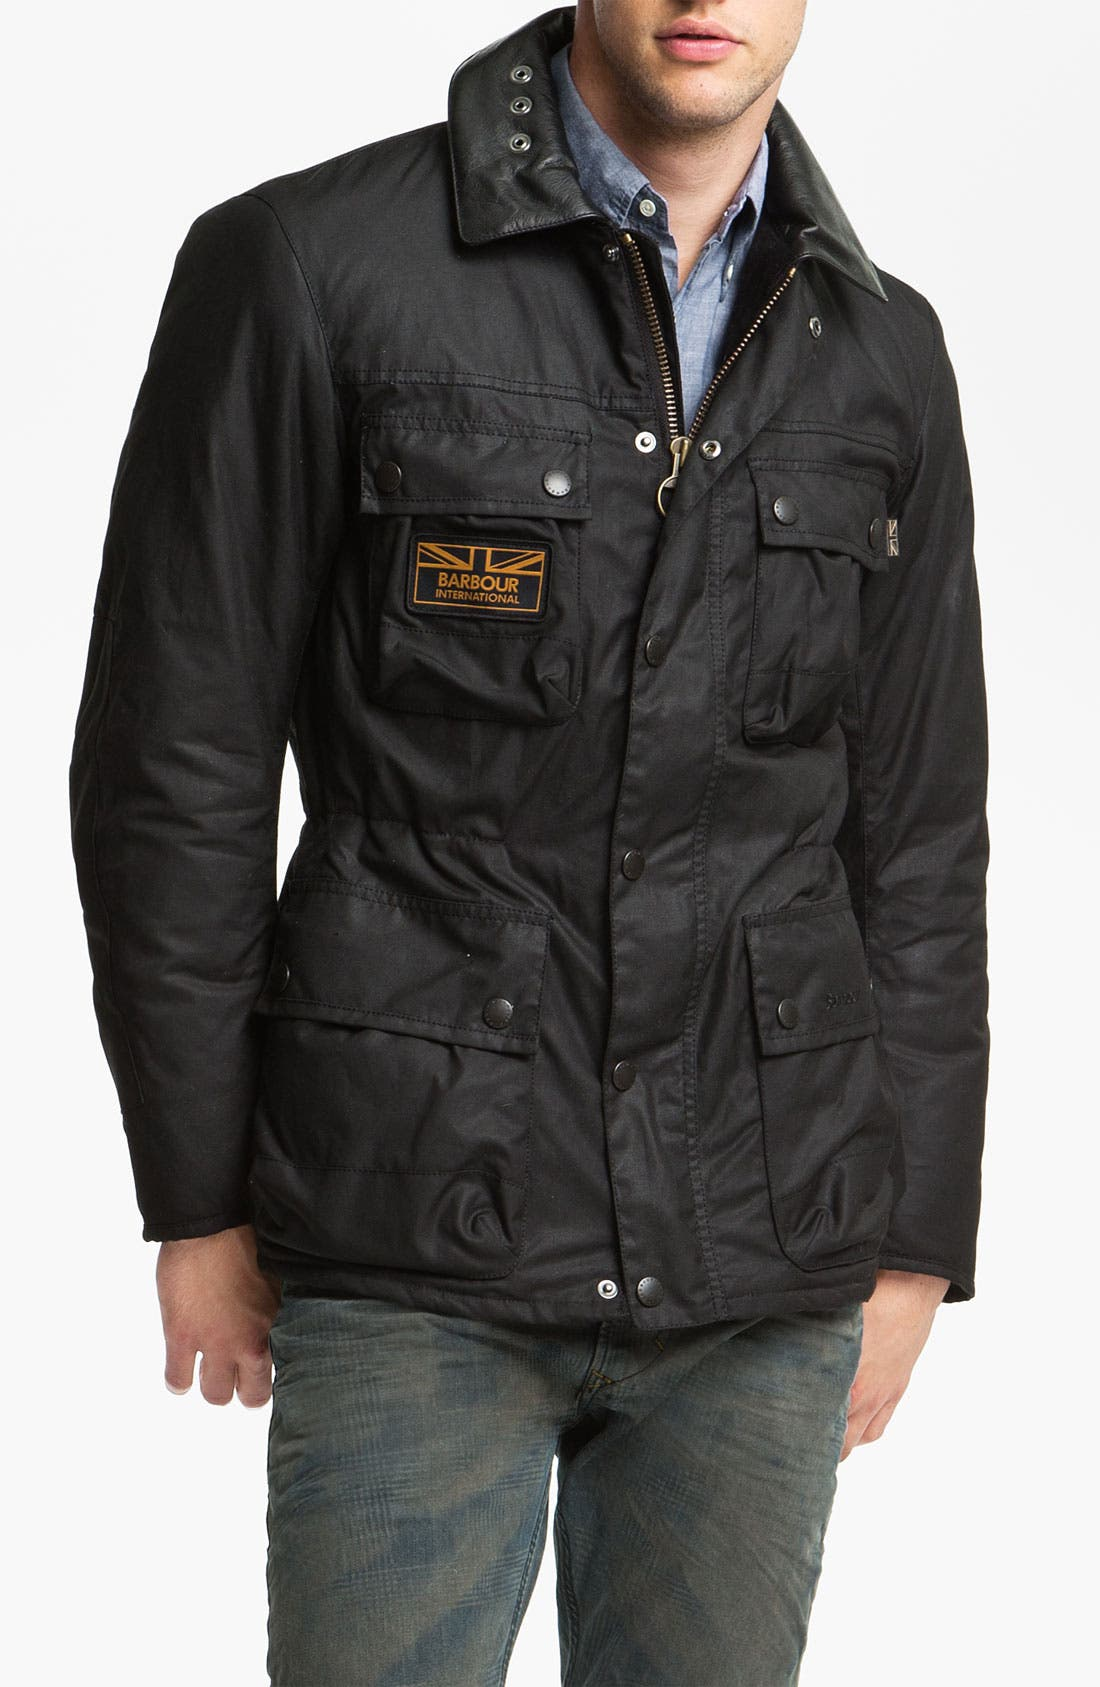 Main Image - Barbour 'Surtees' Wax Cotton Jacket